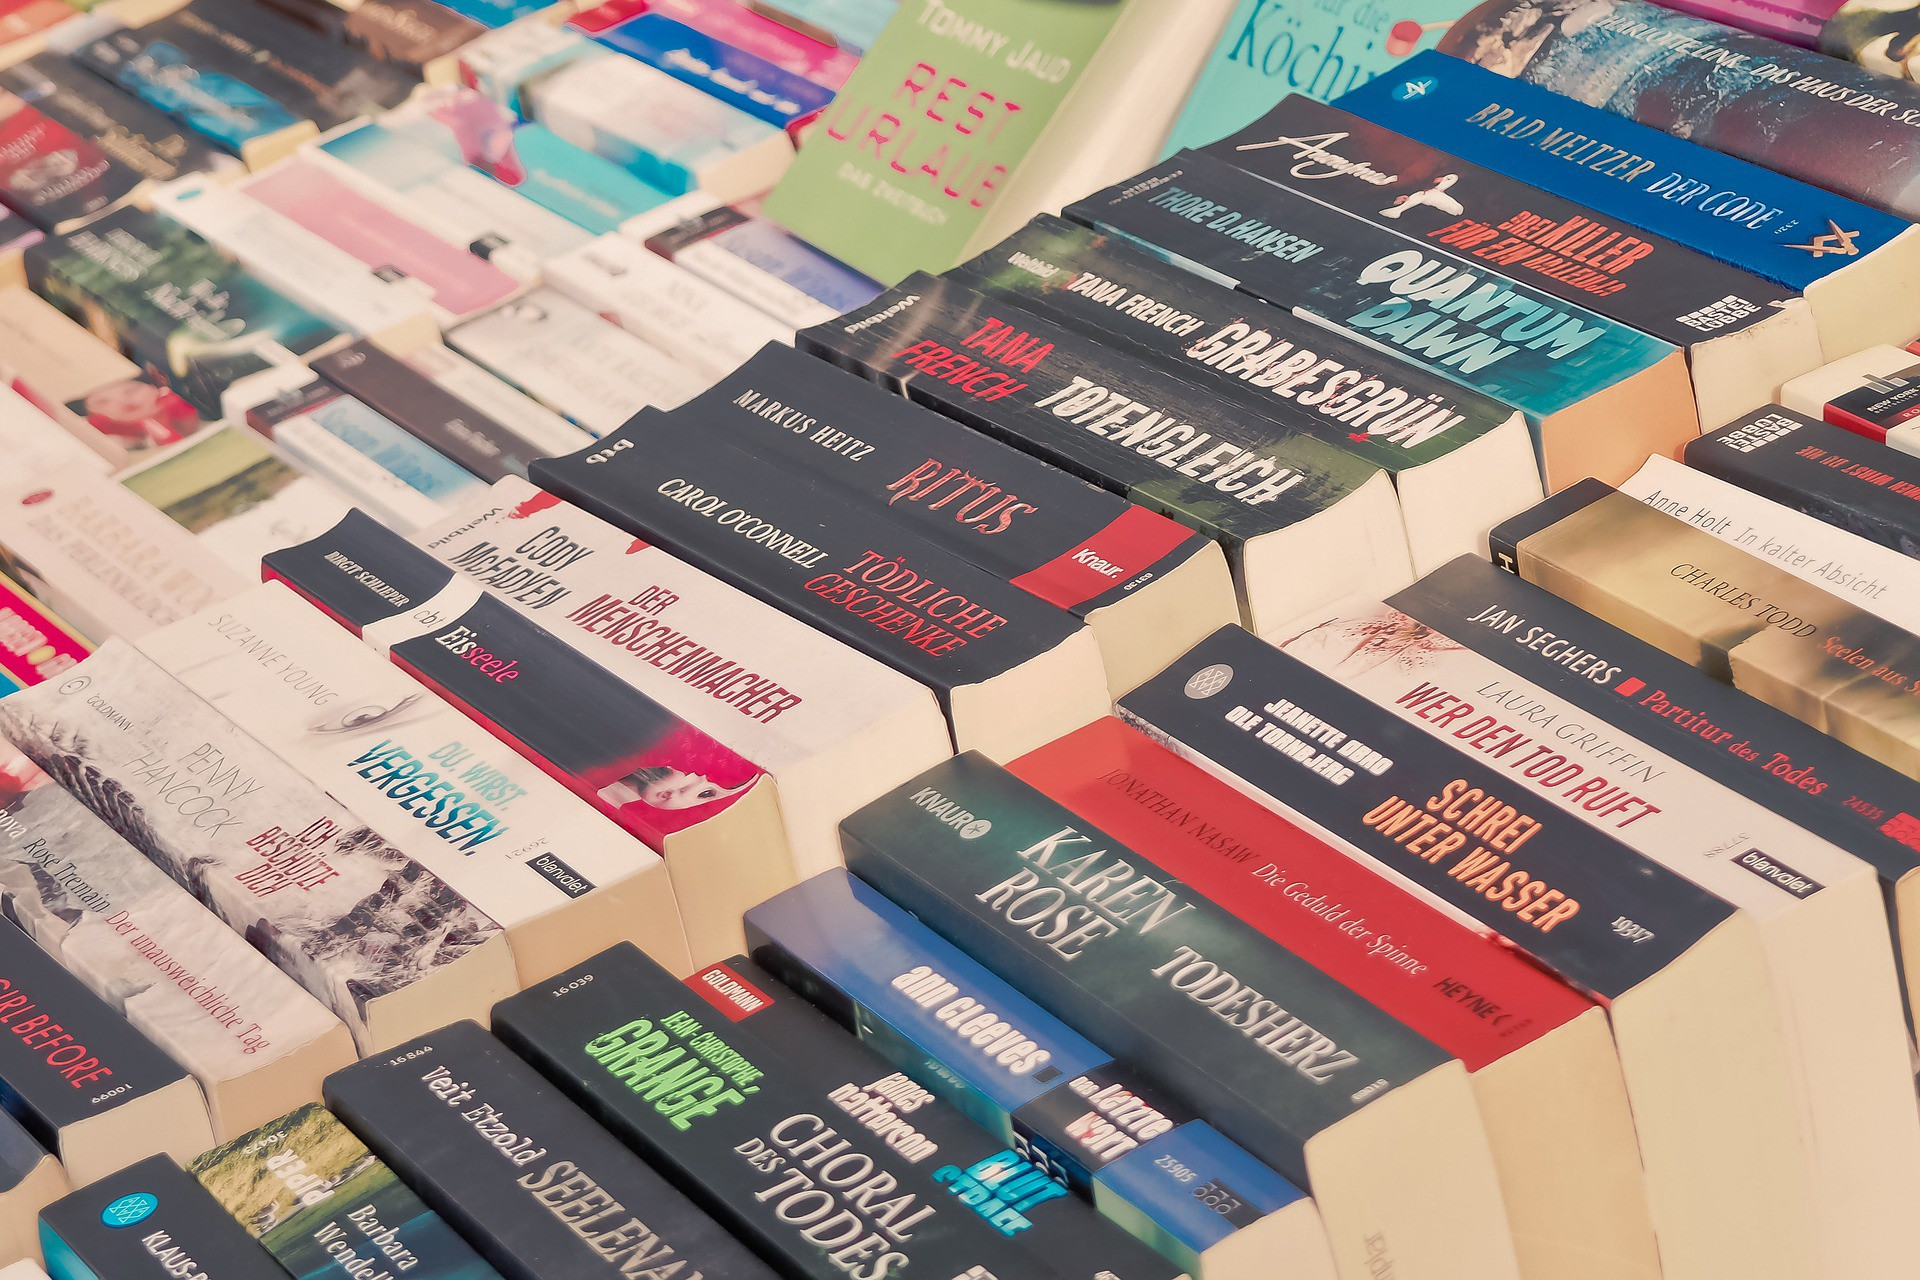 My Journey to building Book Recommendation System